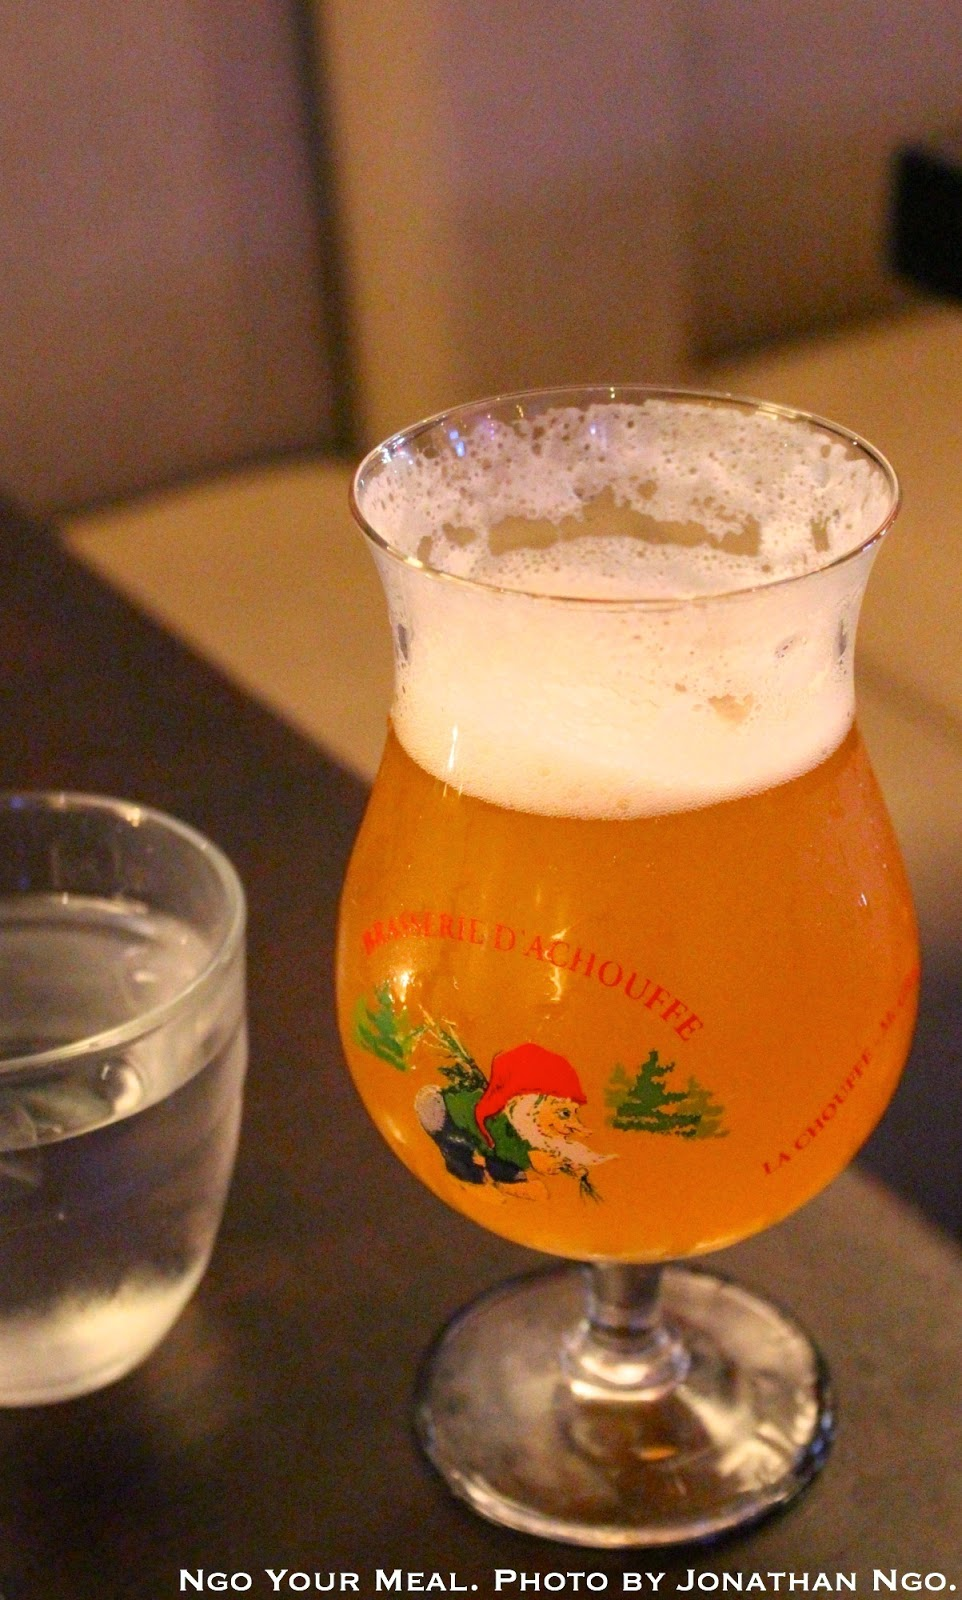 Houblon Chouffe at BXL Zoute